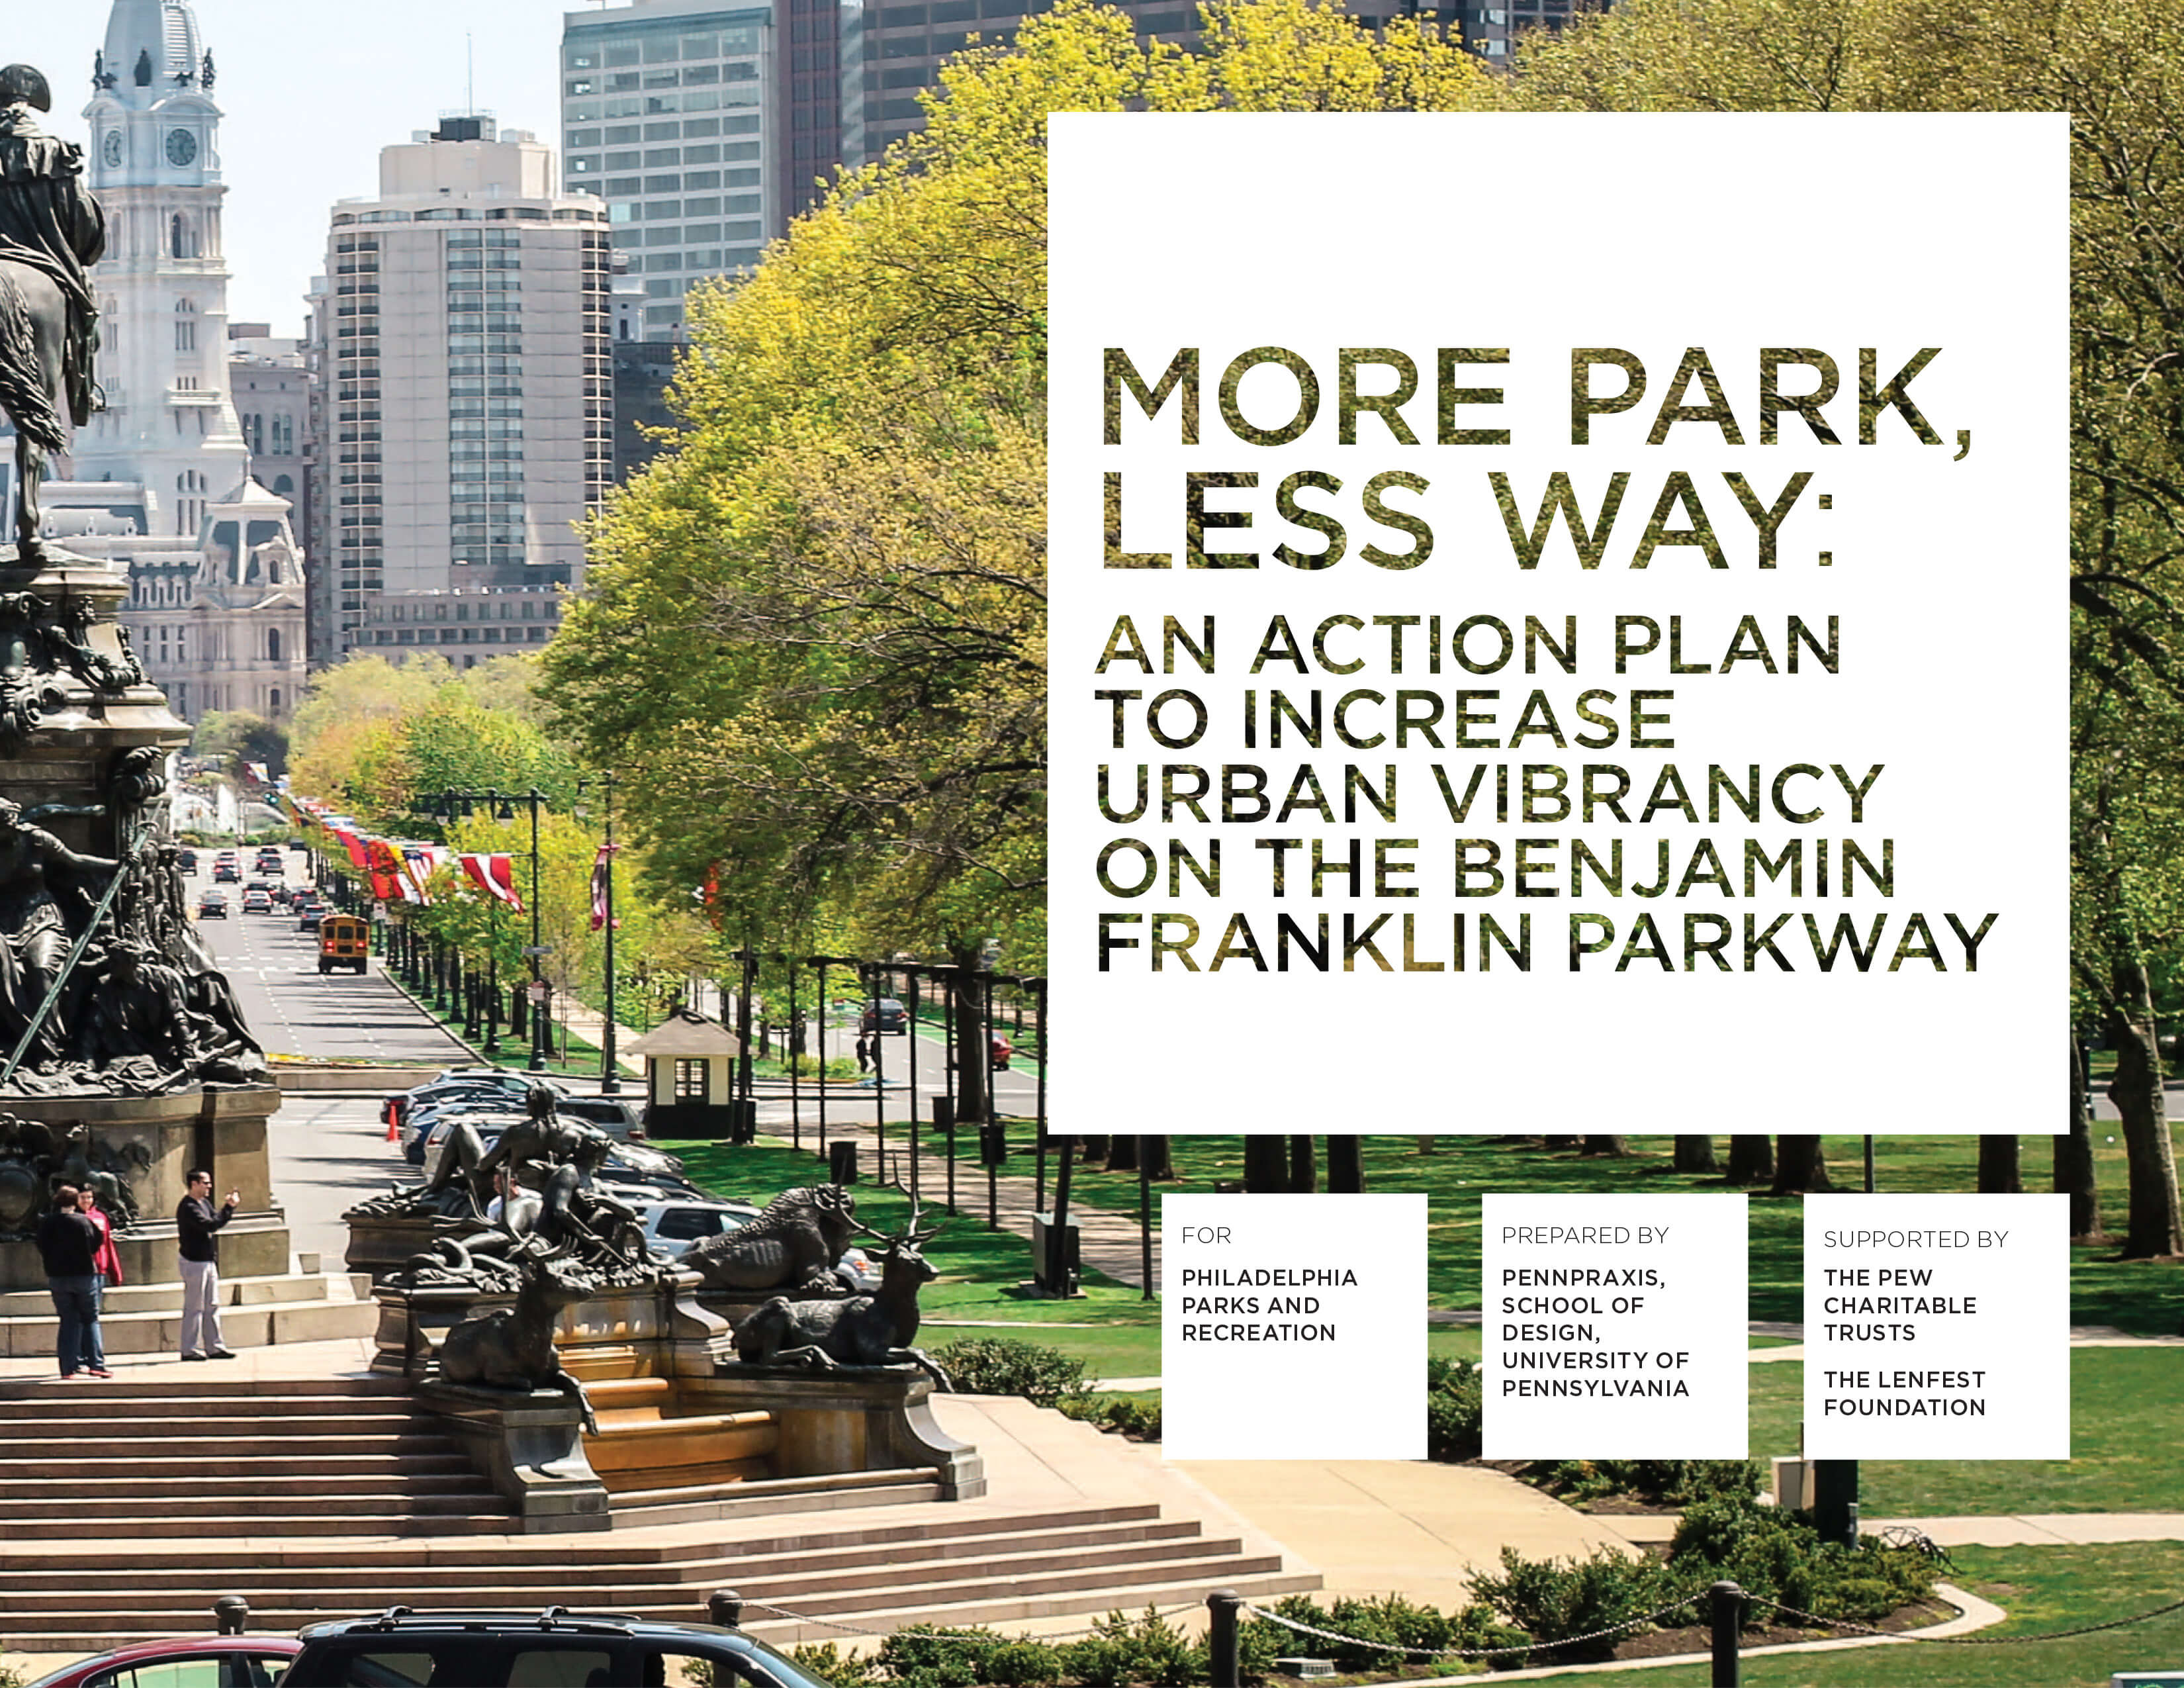 More Park, Less Way An Action Plan for Benjamin Franklin Parkway